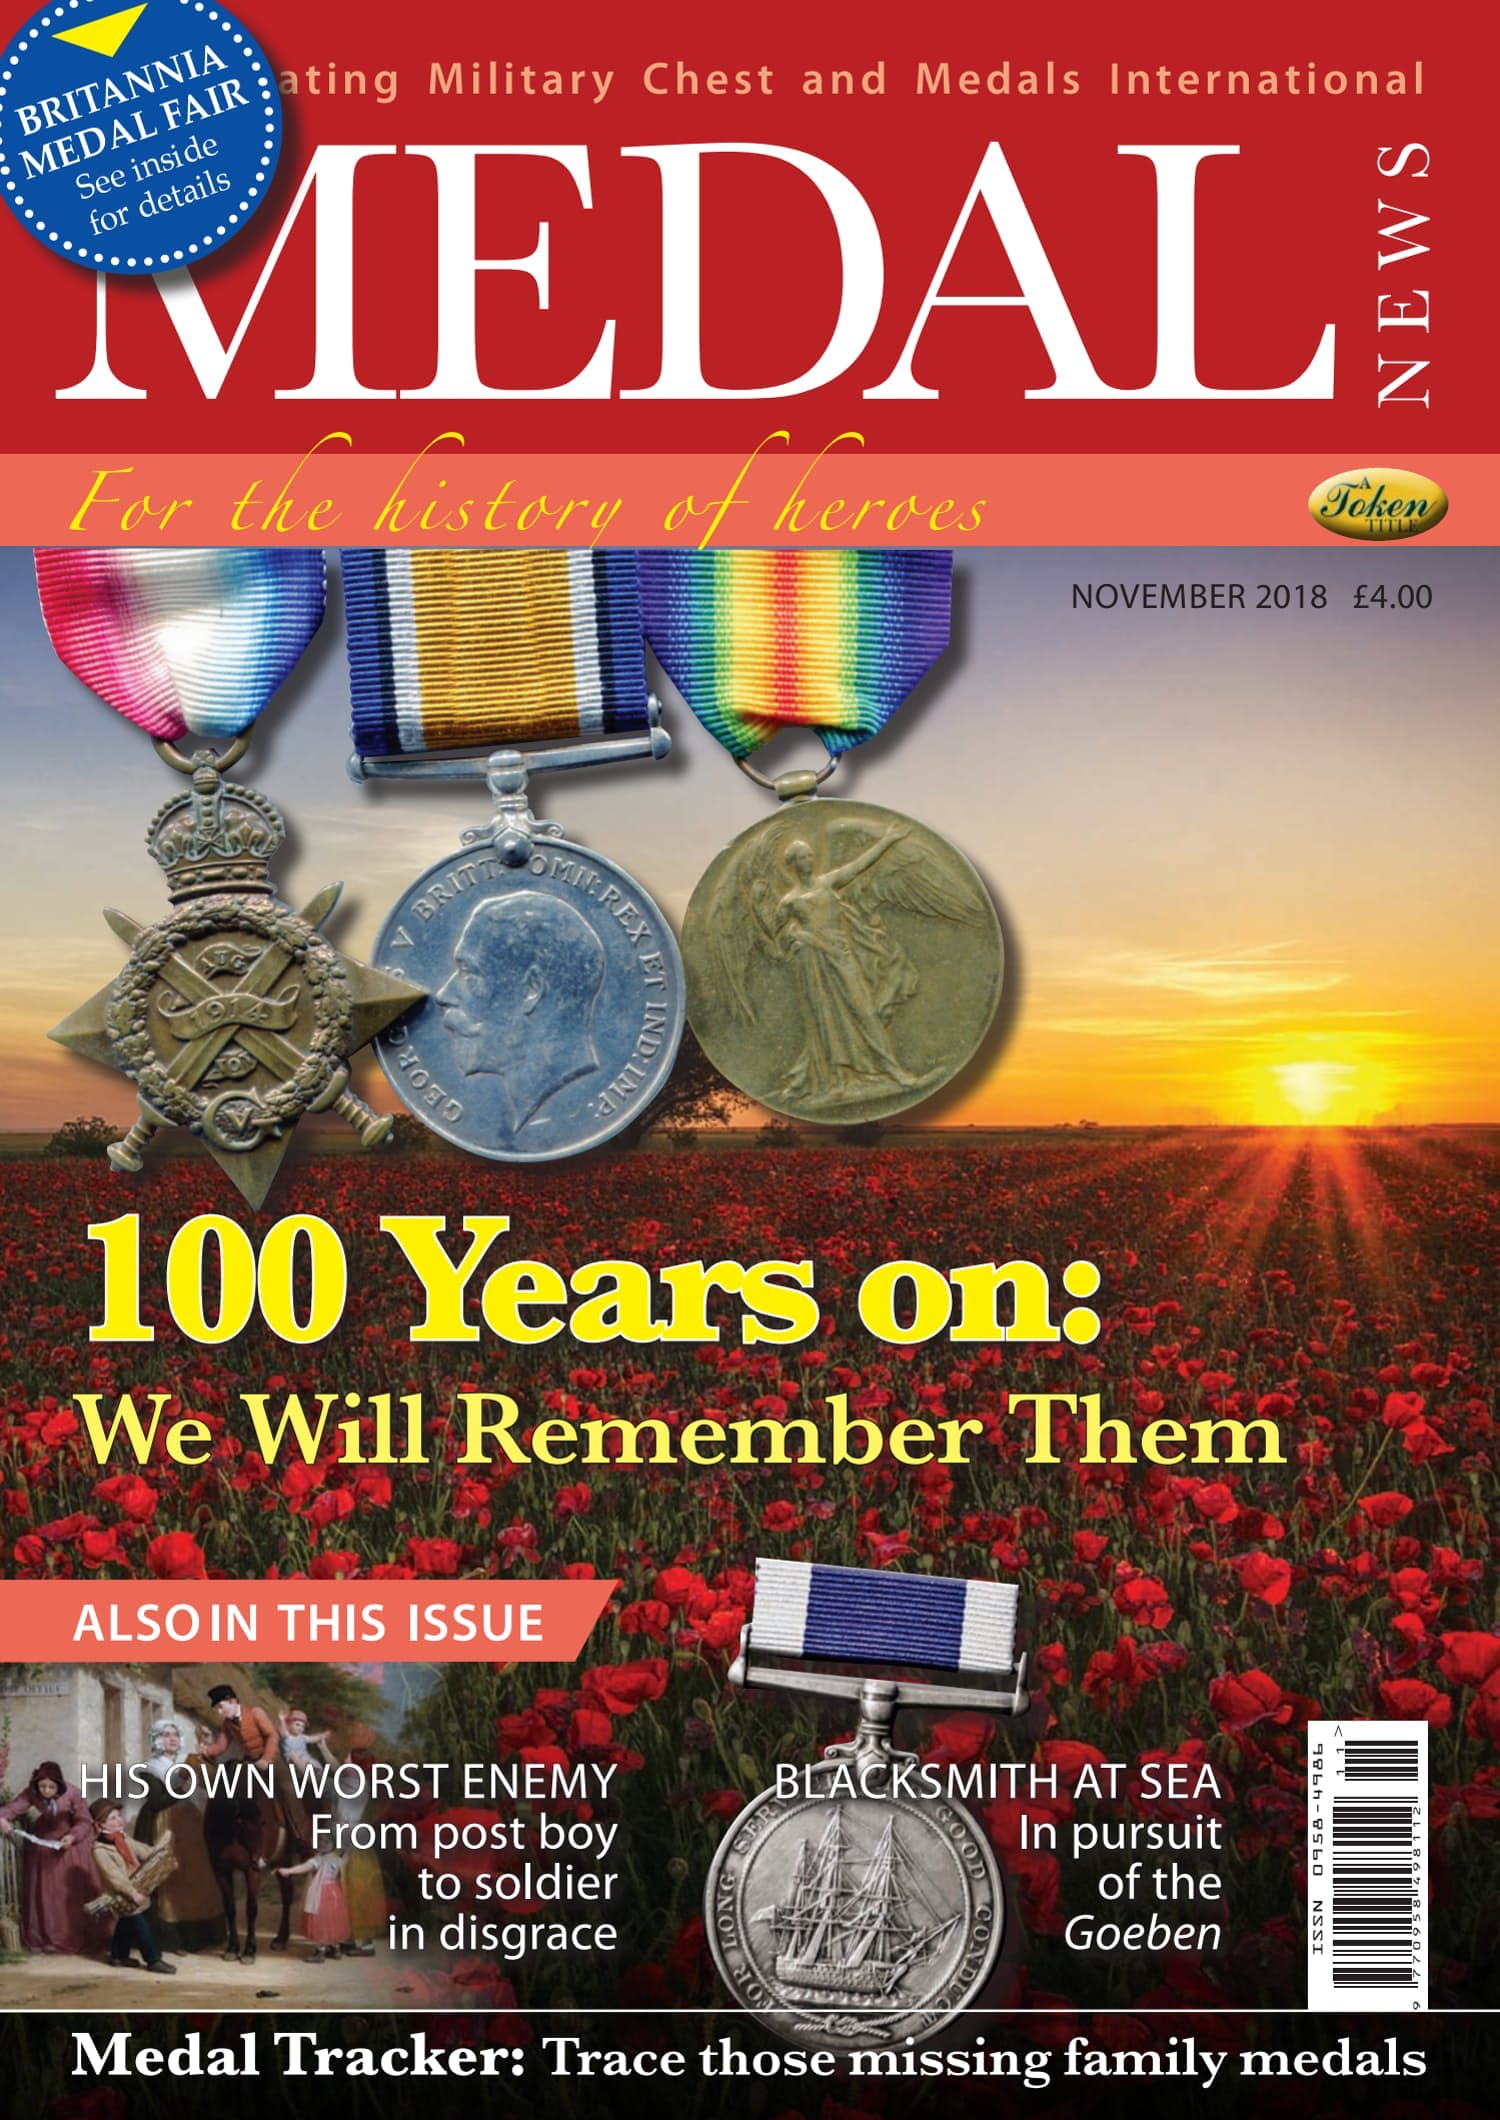 Front cover of '100 Years on: We Will Remember Them', Medal News November 2018, Volume 56, Number 10 by Token Publishing